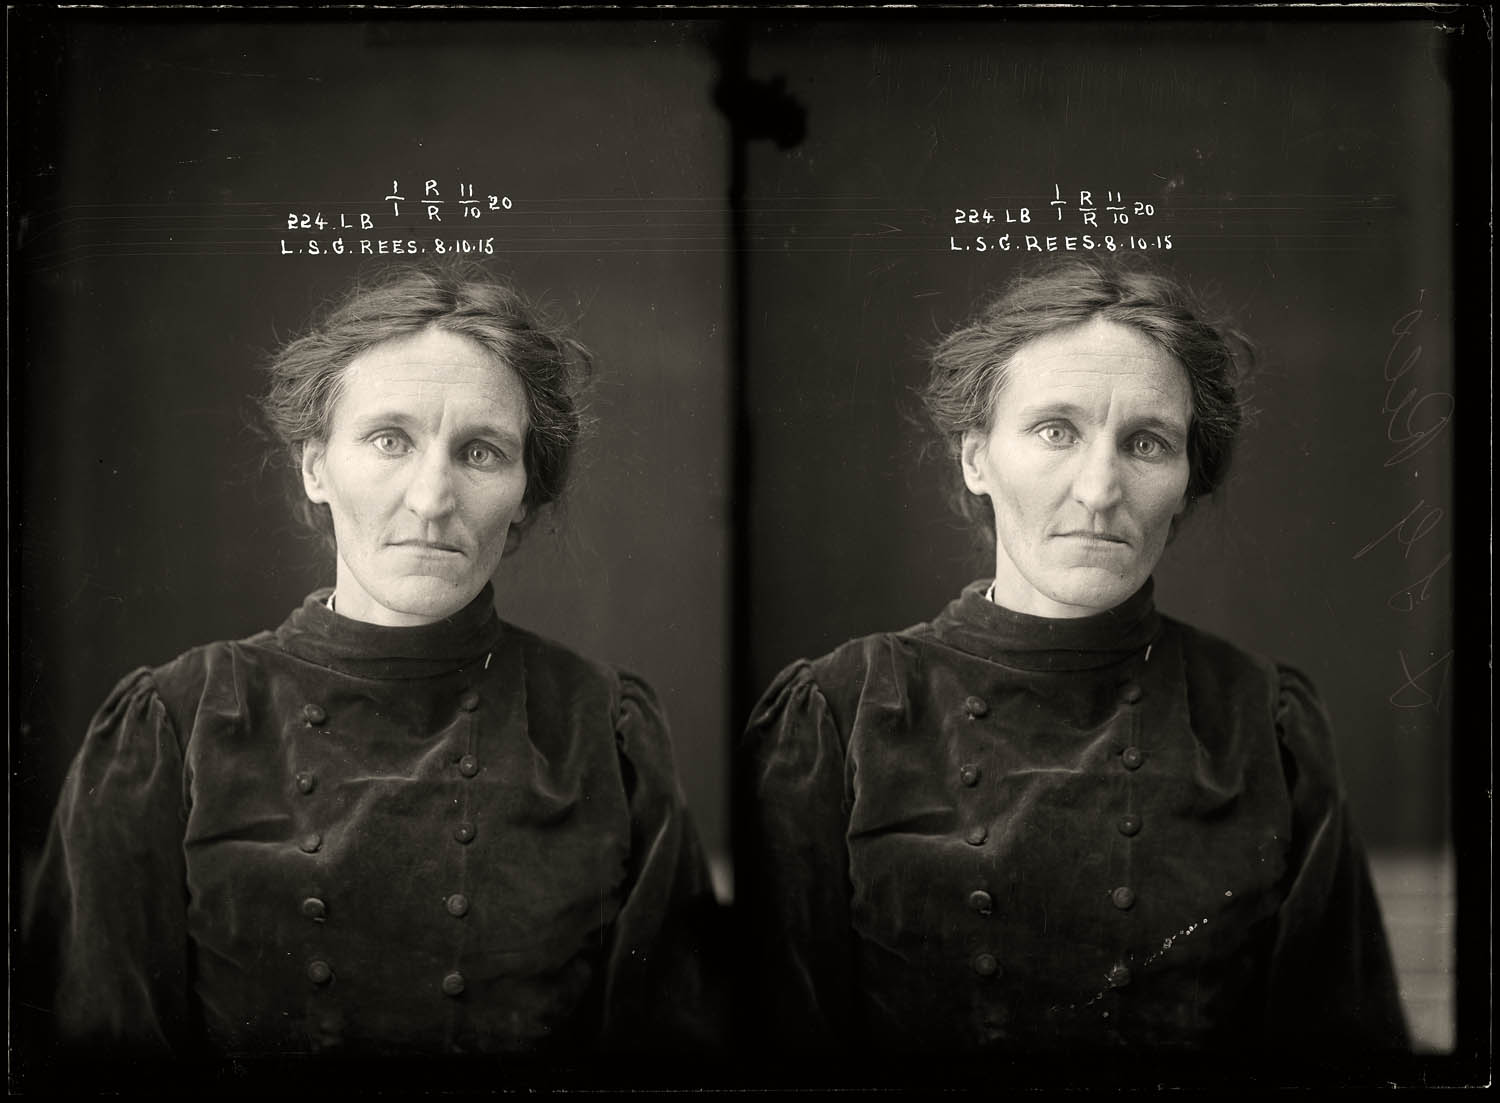 Leslie Selina Gertrude Rees, criminal record number 224LB, 8 October 1915. State Reformatory for Women, Long Bay, NSW